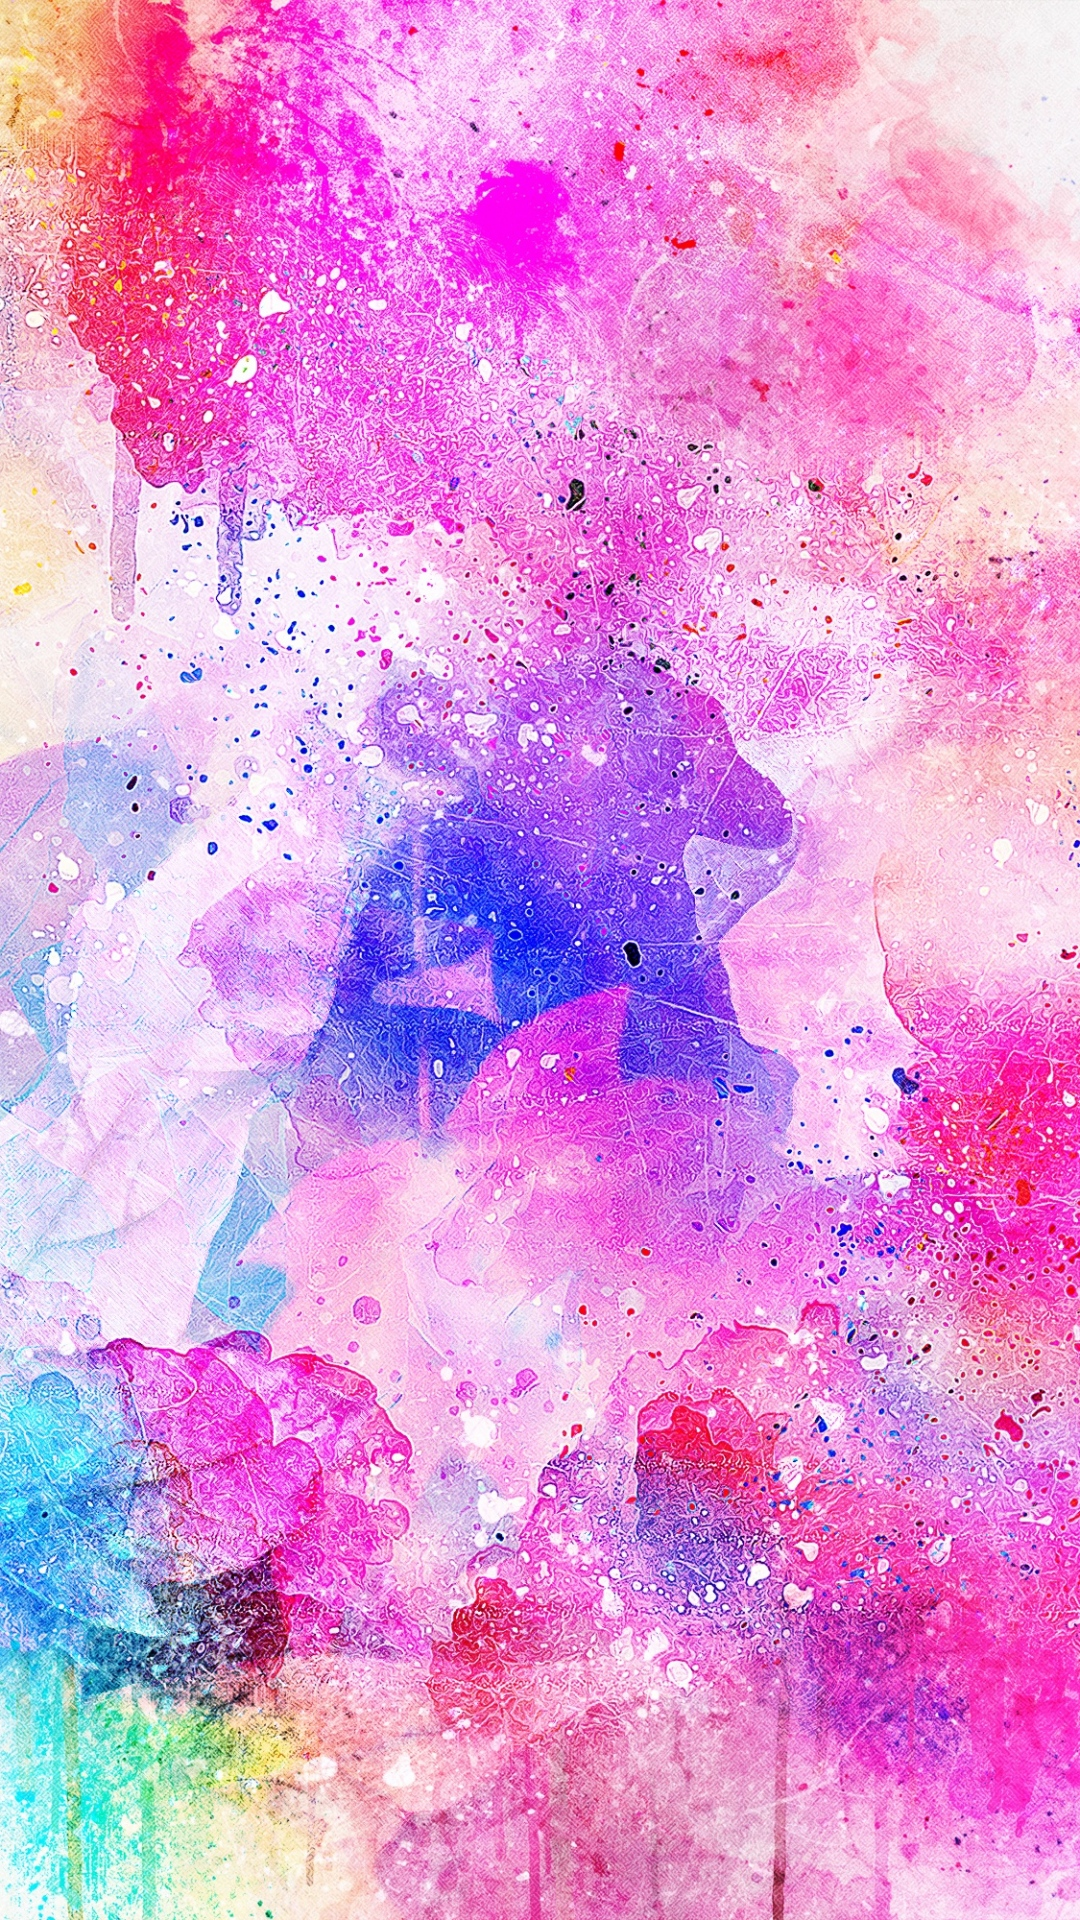 iphone wallpaper watercolor spots bright pink 3Wallpapers : notre sélection de fonds décran du 06/09/2017